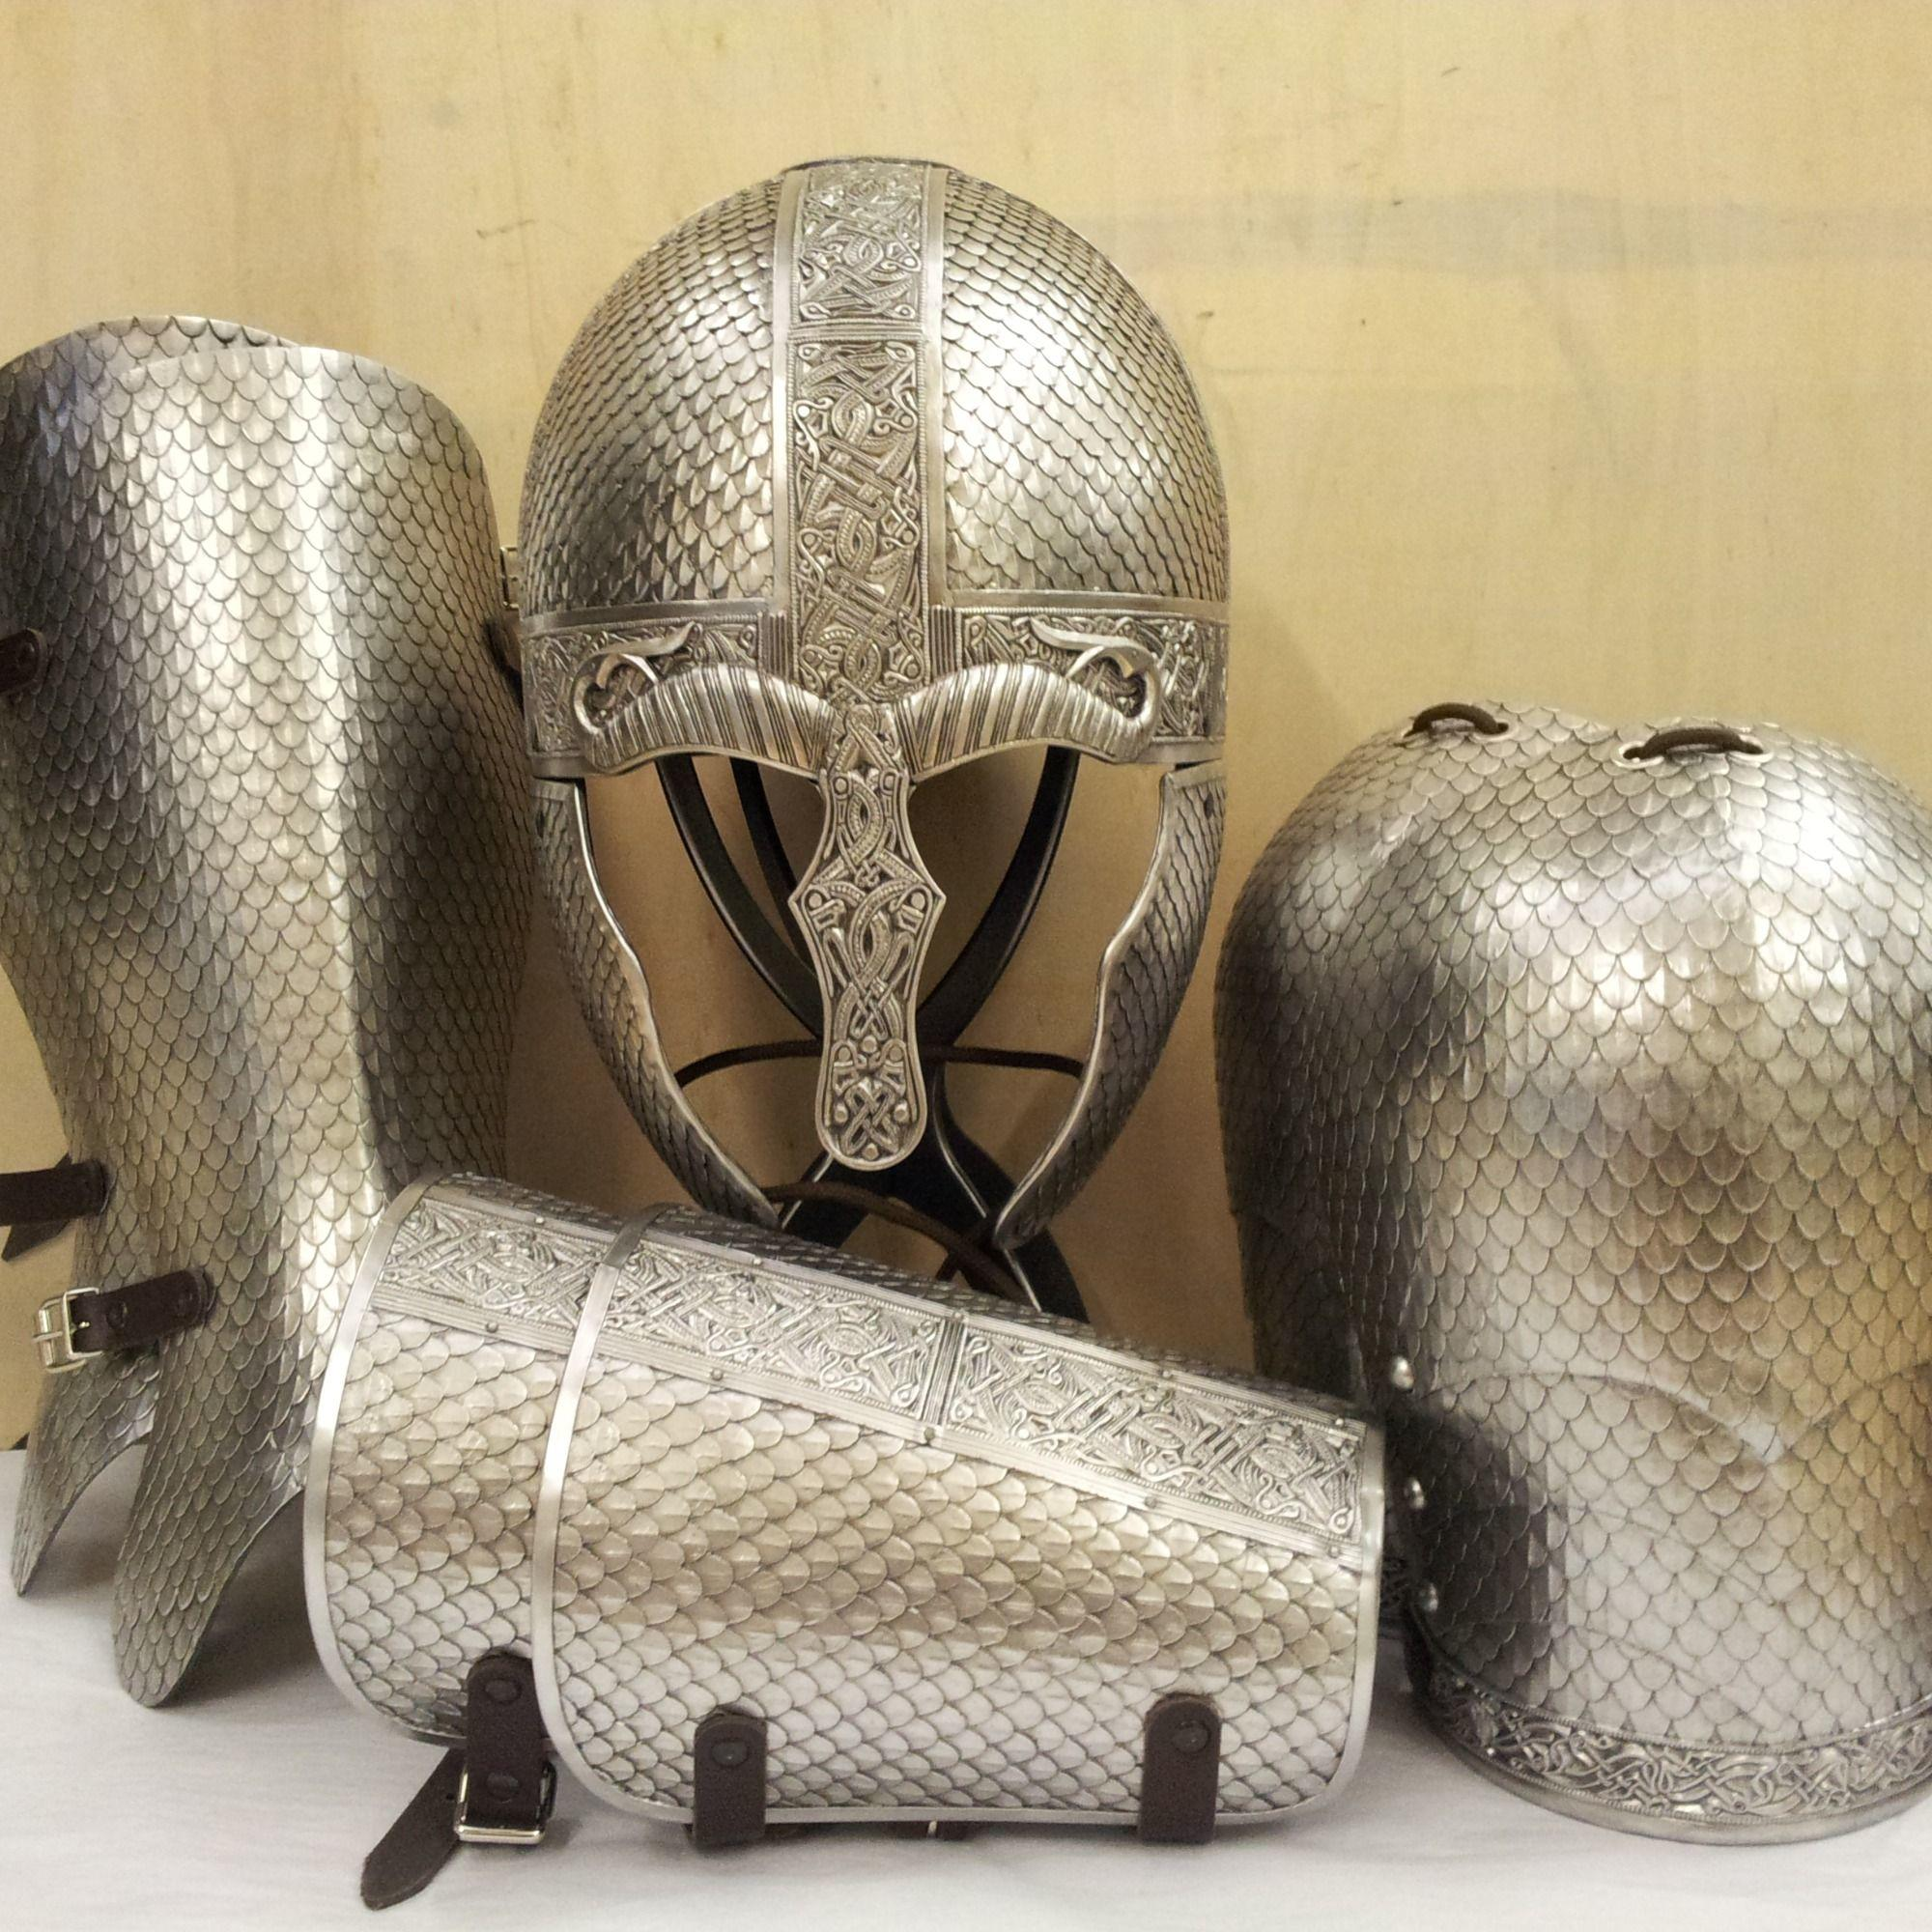 Wyrmwick scaled larp armour set